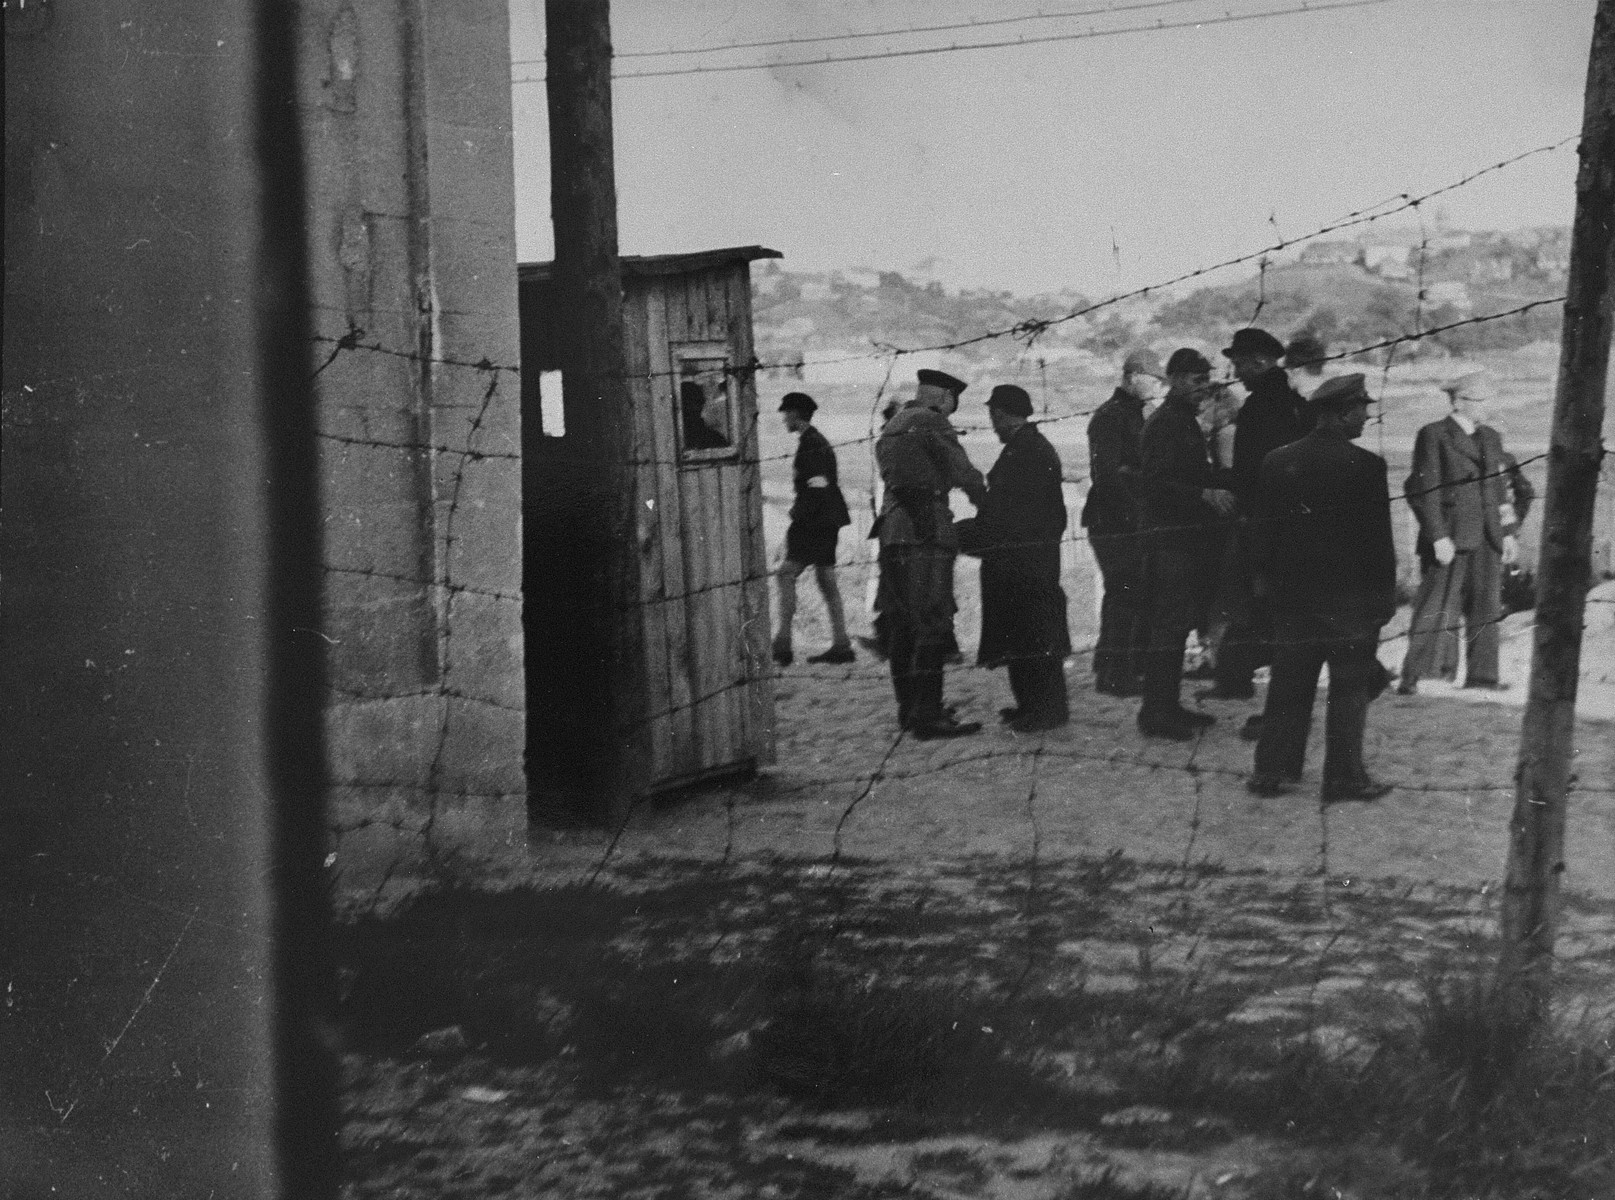 A group of Jews return to the ghetto after forced labor on the outside. German and Lithuanian guards search them as they enter. Jewish police stand among them.